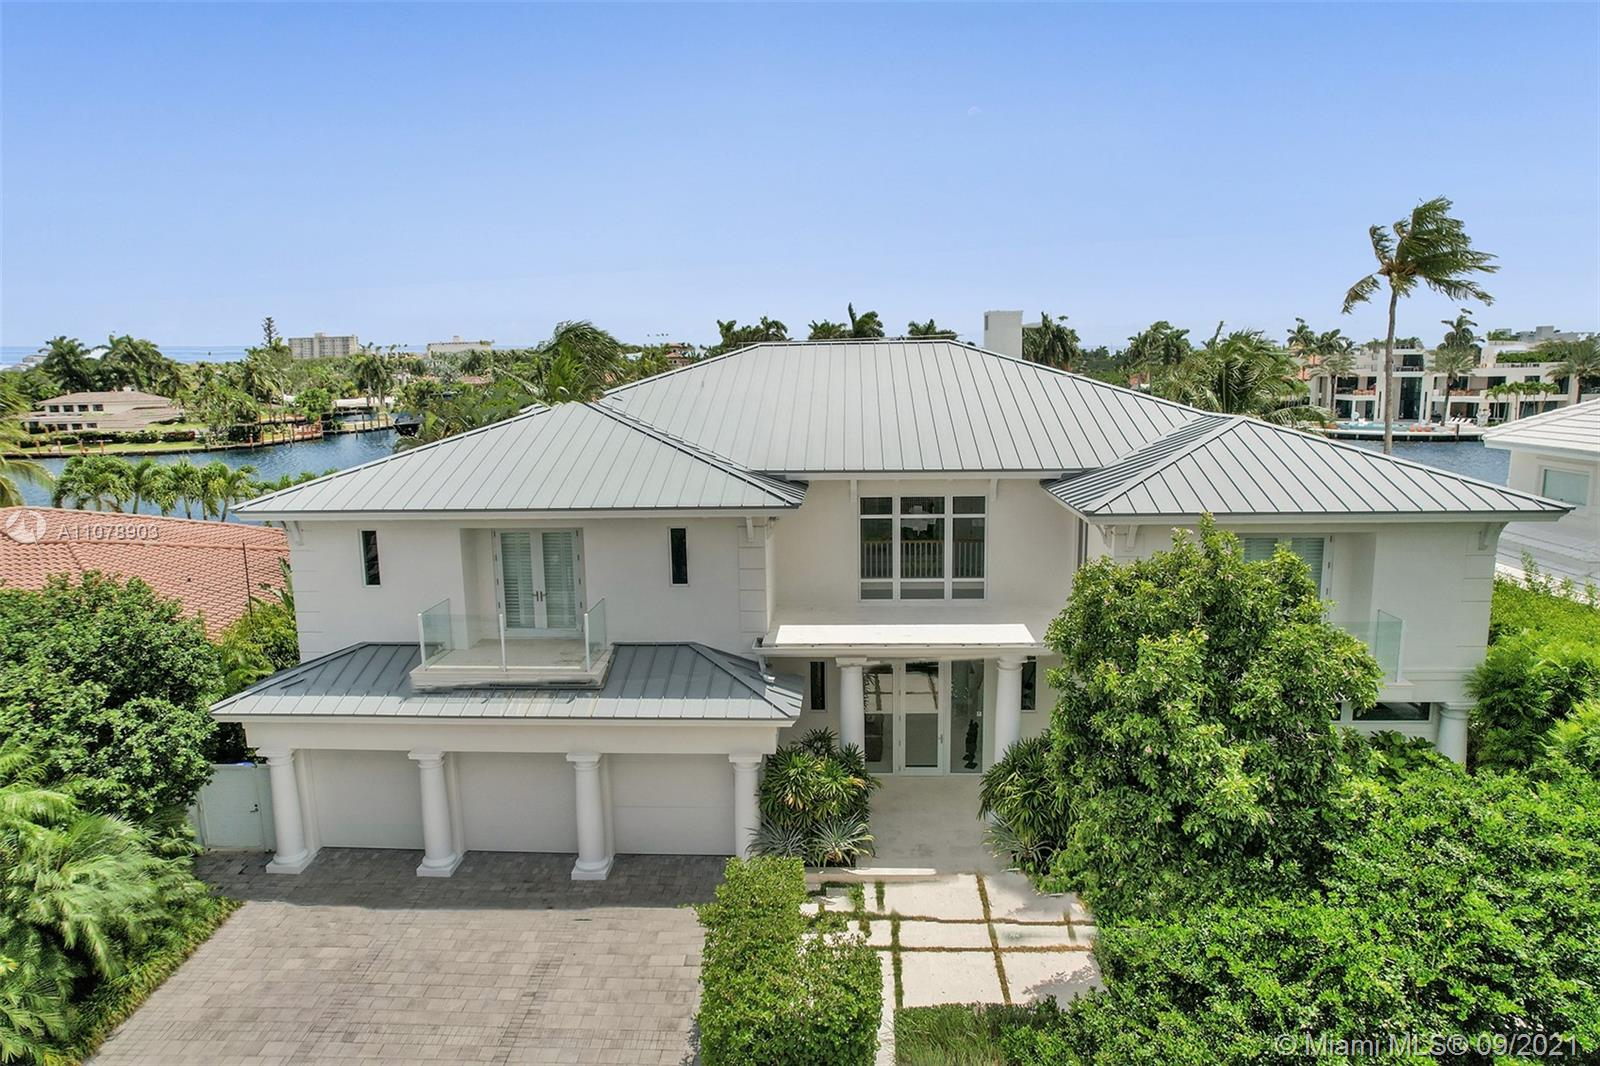 Stunning waterfront estate located in the unique island community of Sunrise Key consisting of 75 single family waterfront homes w/ gated entry & police patrol. Breathtaking wide water views ideal for boating w/ a large turning basin in the no wake zone Rio Barcelona waterway & minutes to the Intracoastal w/ no fixed bridges. Luxurious custom appointments w/ modern framework including all en-suite bedrooms, chef's kitchen w/ butler's pantry, top of the line appliances w/ custom commercial range hood, floor to ceiling windows w/ electric window treatments, tray ceilings, custom oak built-ins throughout, oversized laundry room, 3 car garage, back staircase to 2nd floor, lush landscaping & many more custom features.  First time on the market. Property is offered furnished. Artwork negotiable.